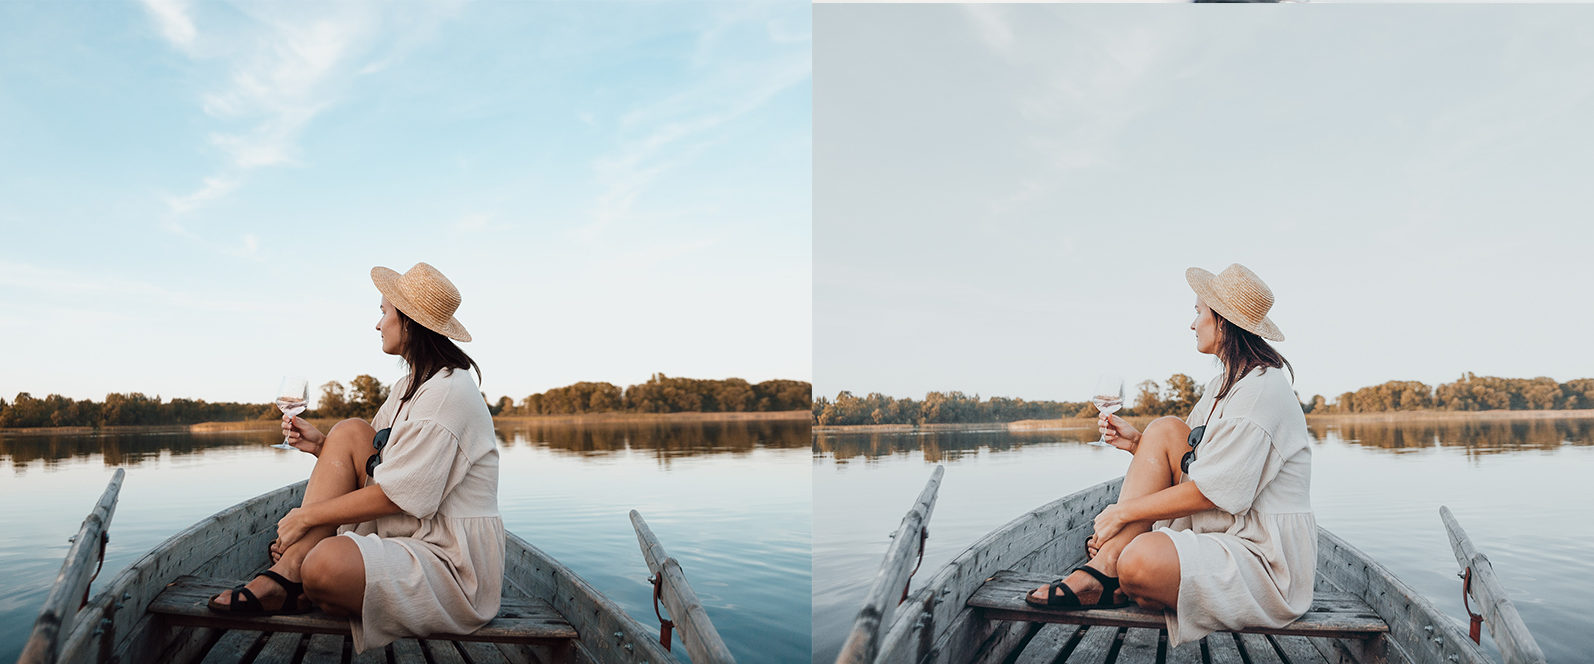 50 x TRAVEL BLOGGER PRESETS // Collect Memories // THE ONLY PRESETS YOU WILL EVER NEED - Preview 19 -